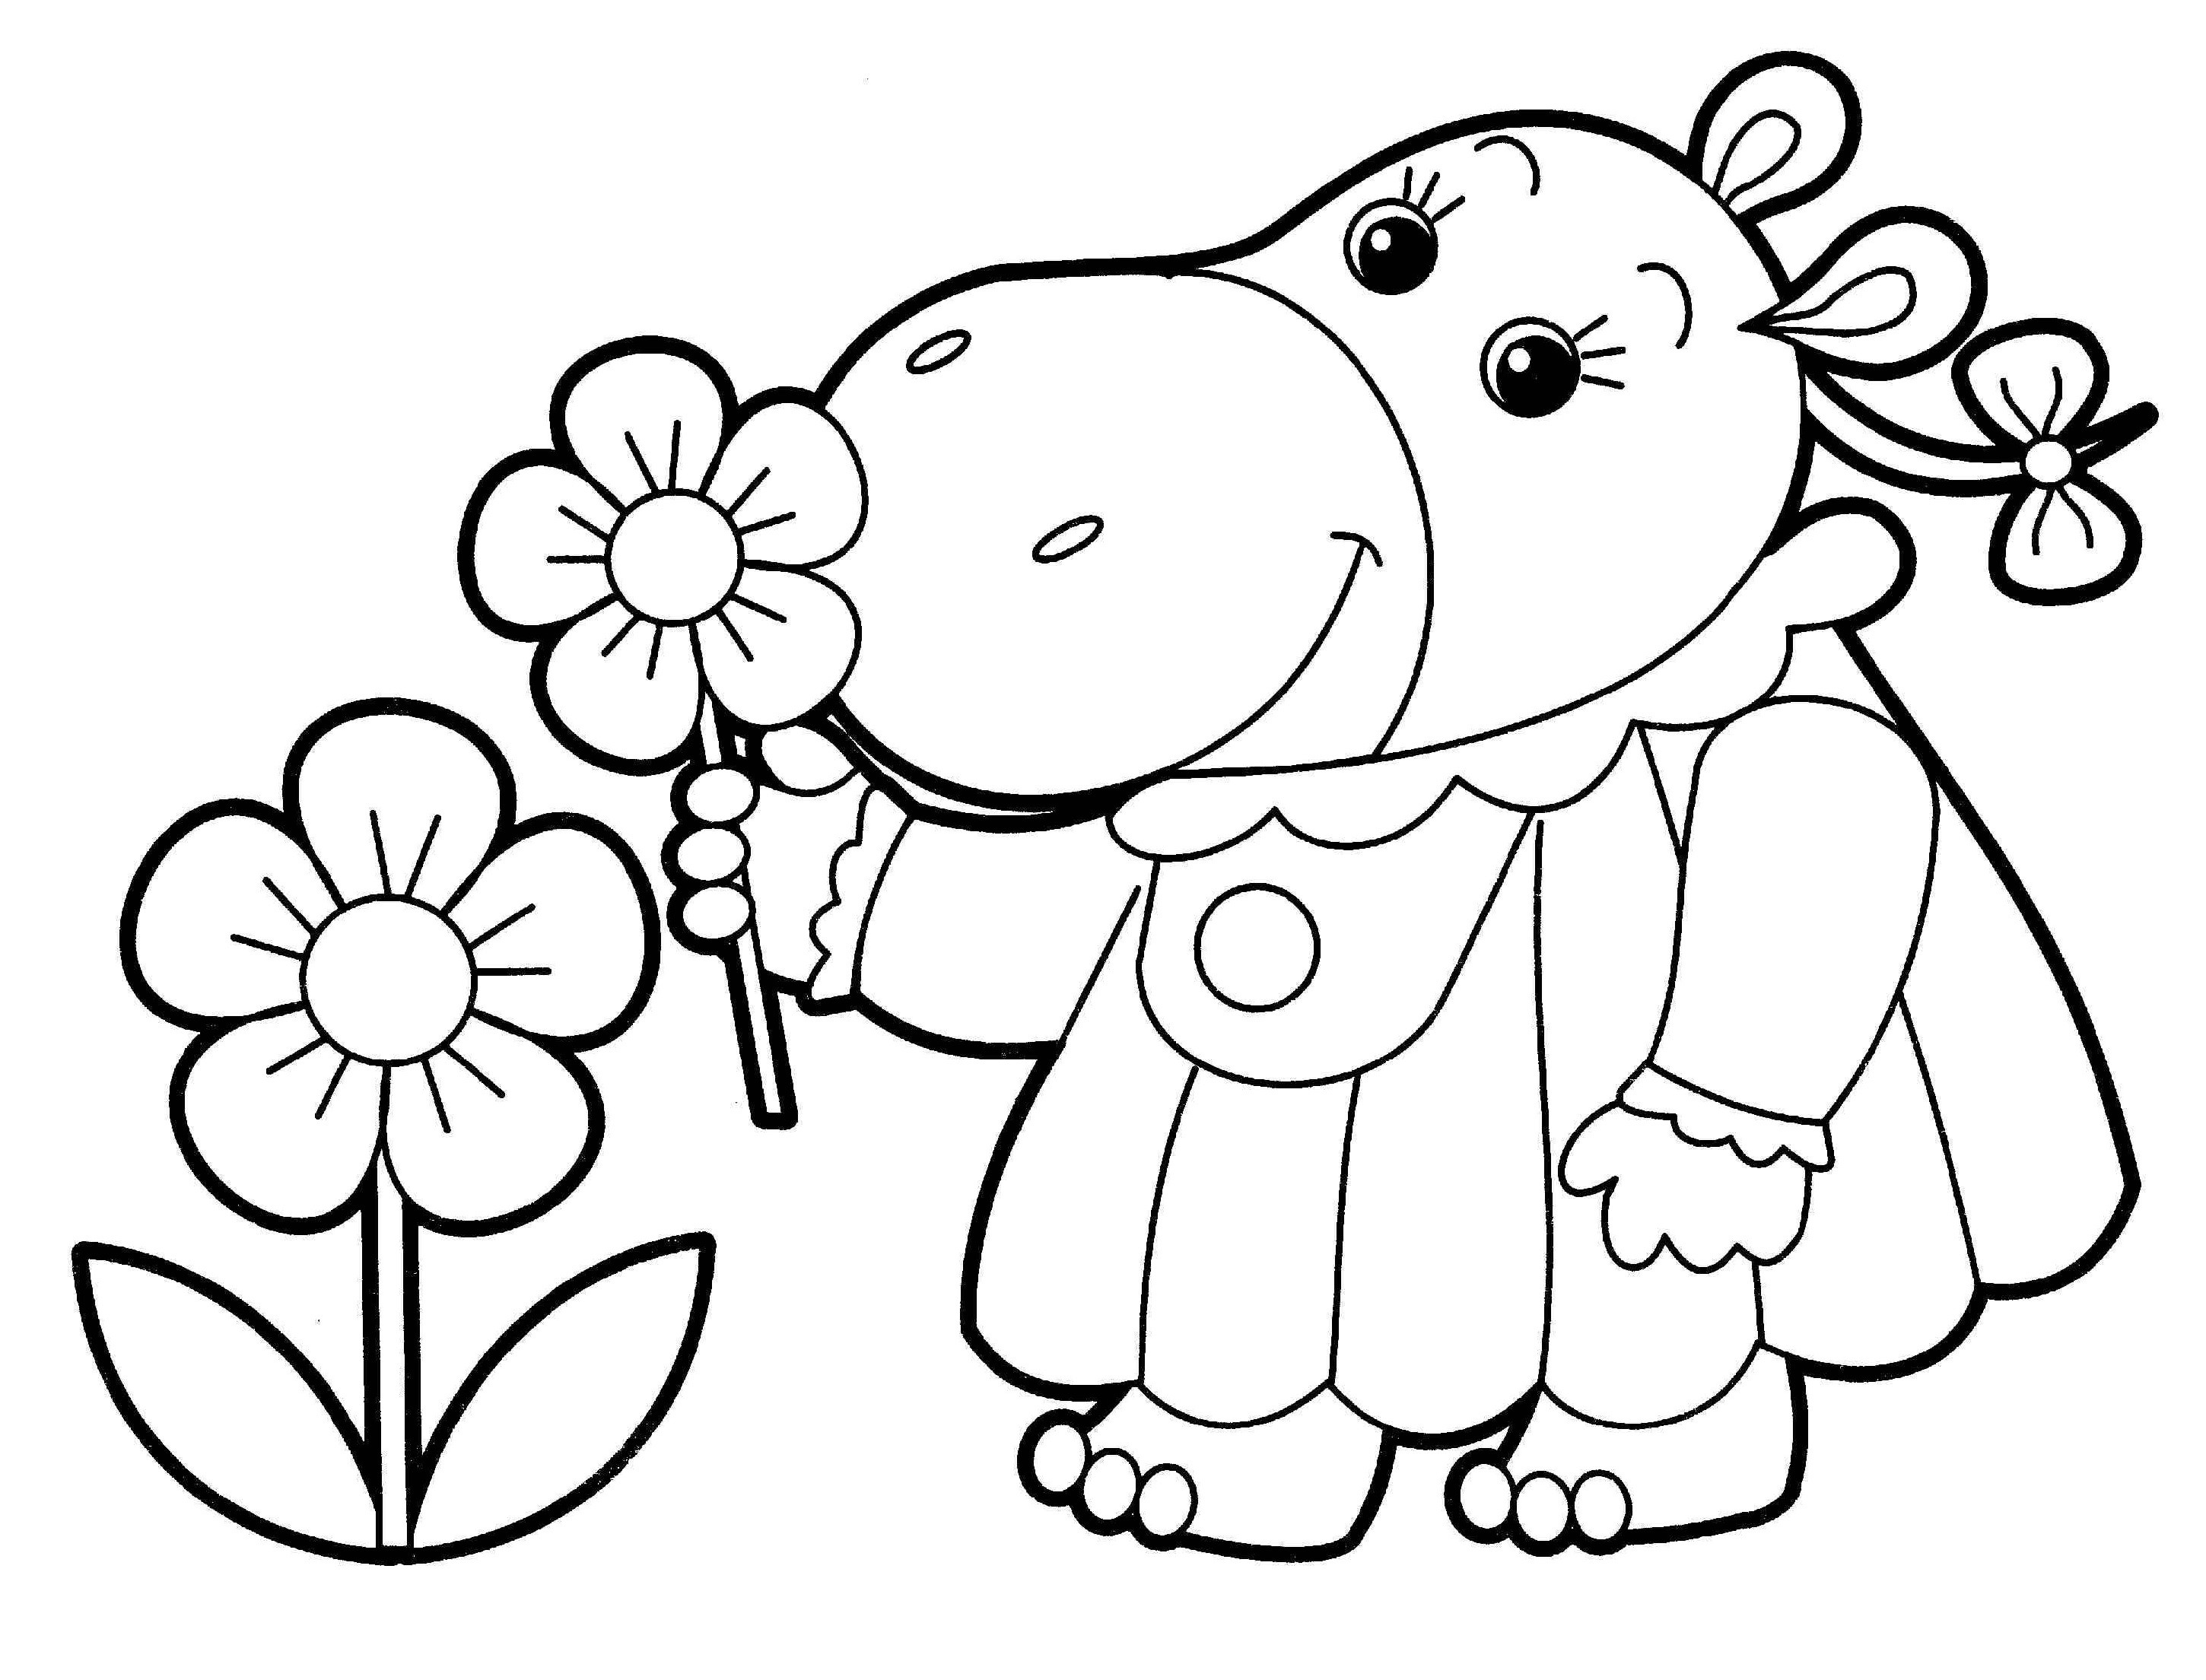 Coloring Book Download Cartoon